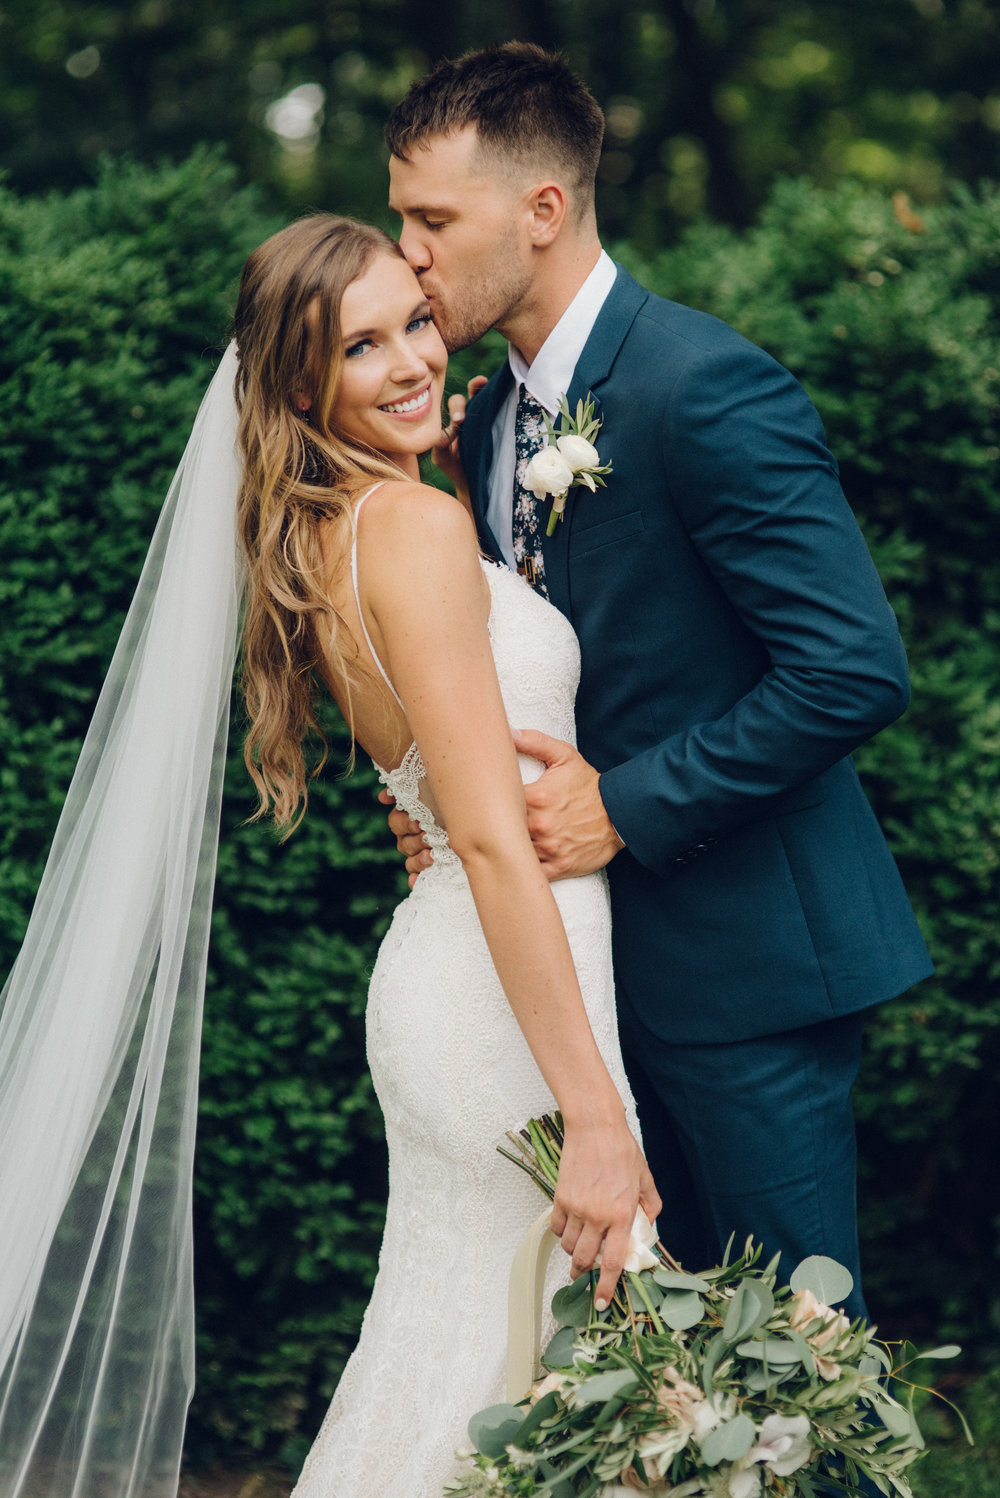 Becky and her team are amazing! I was relaxed on my wedding day because I knew they had it all under control! They are so kind and fun and made my wedding day perfect!- Maddie & Jack 2018 Iowa - Planned by Becky